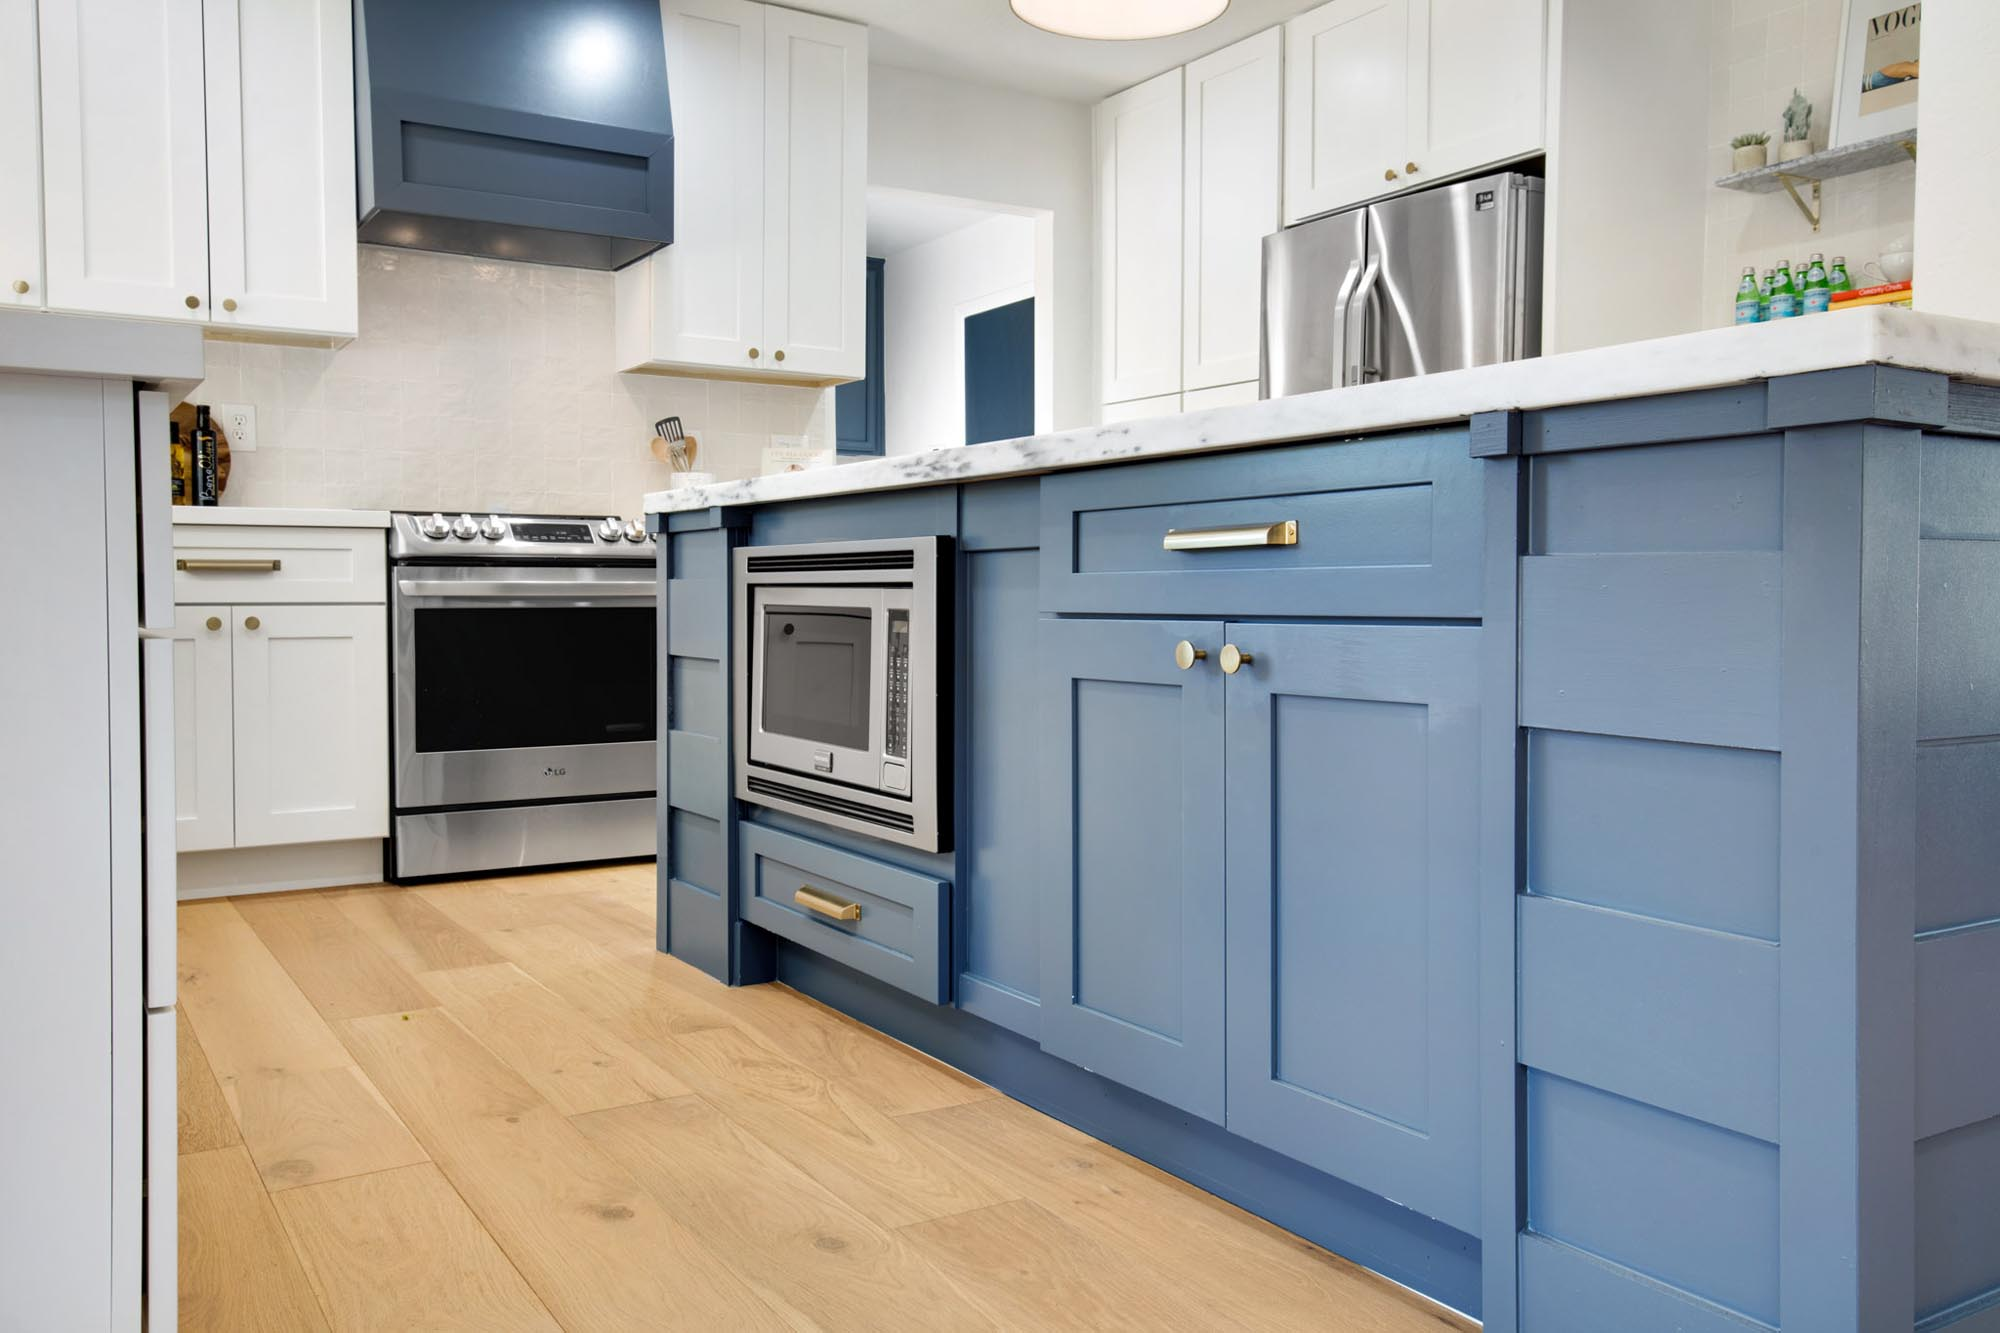 Kitchen with blue painted island cabinet and white countertops